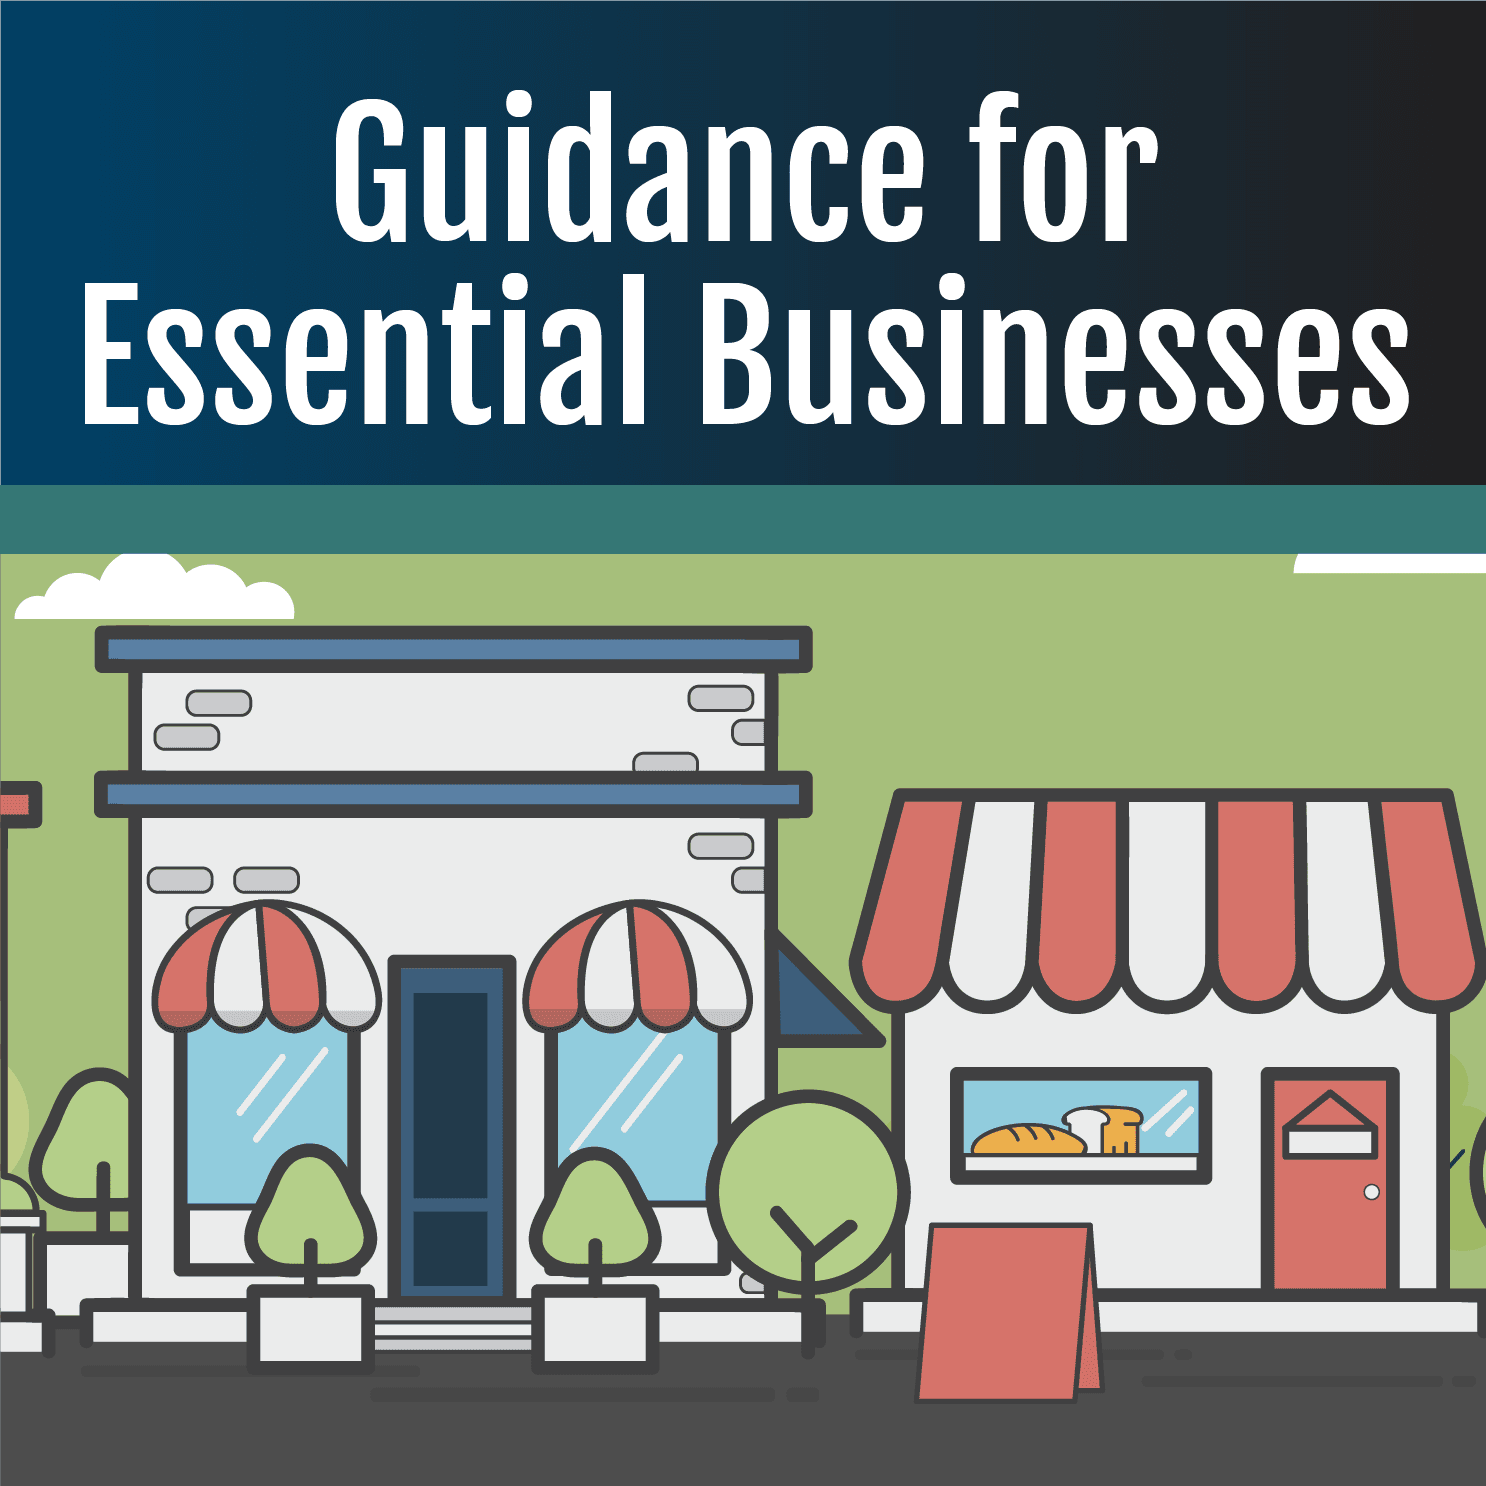 Guidance for Essential Businesses